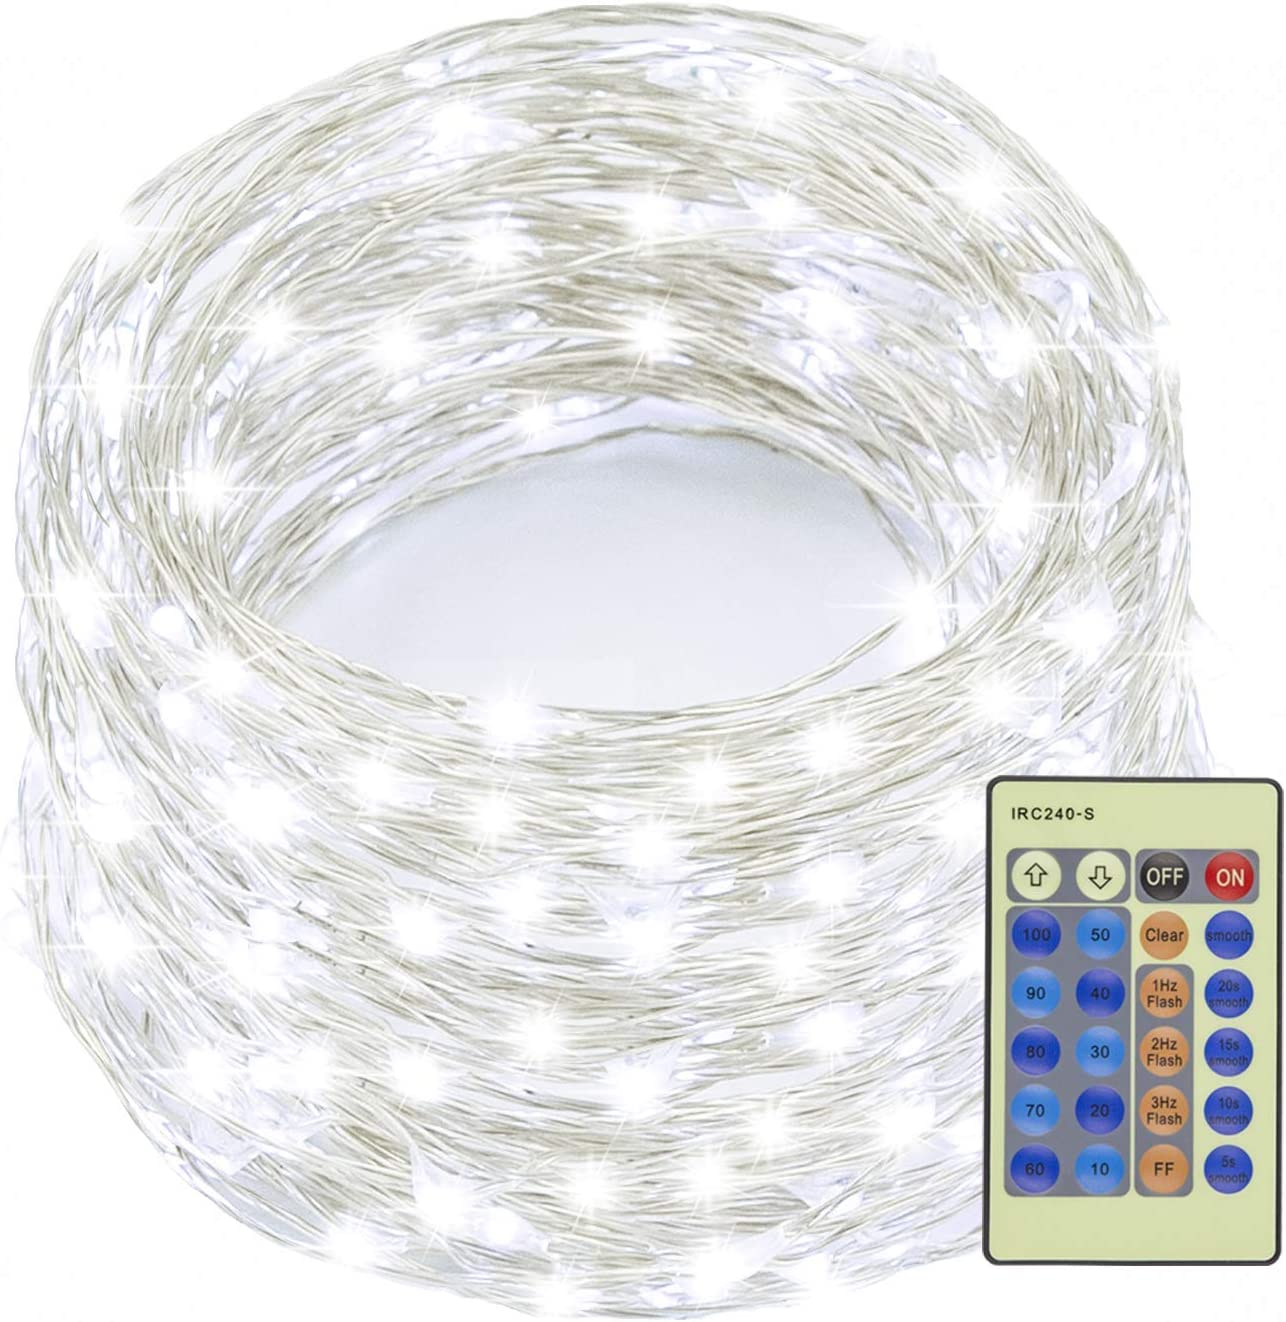 Decute 99 Feet 300 LEDs Silver Wire Fairy Lights Dimmable with Remote Control, Christmas String Lights with UL Listed for Party Wedding Bedroom Christmas Tree, Cool White